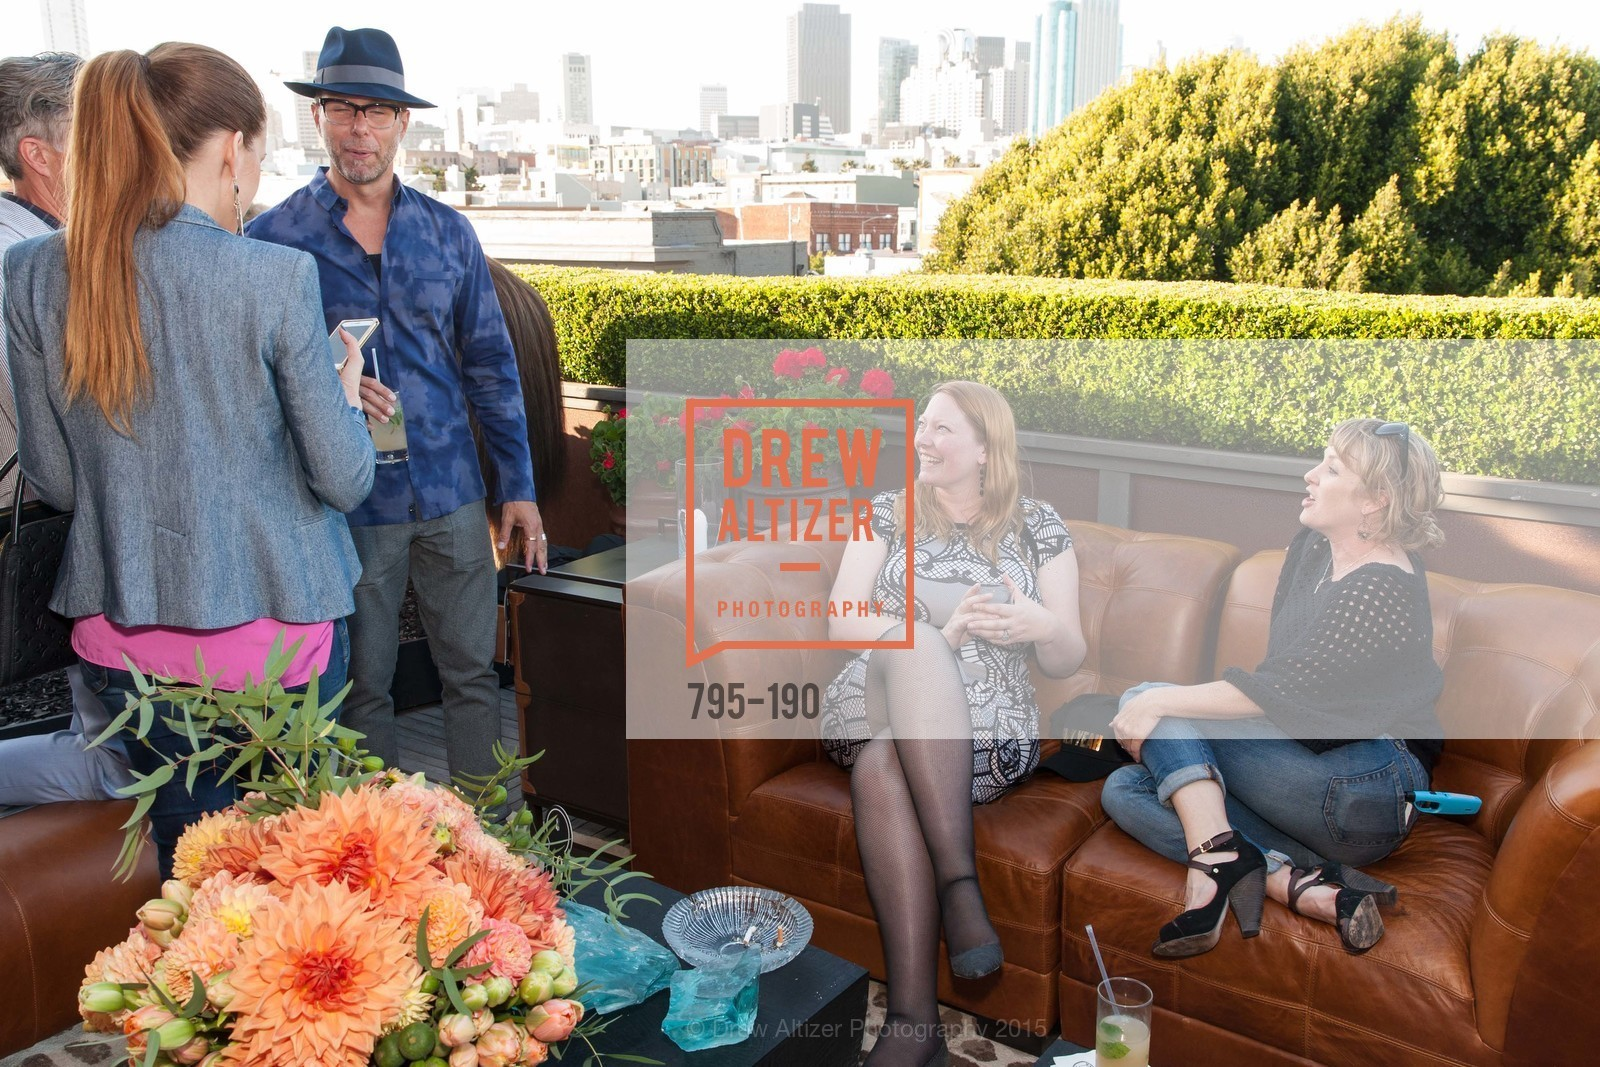 Taryn Shortley, Mindy Stiner, KEN FULK'S New Furniture Line Unveiling at THE MAGIC FACTORY, The Magic Factory. 310 7th St, June 25th, 2015,Drew Altizer, Drew Altizer Photography, full-service agency, private events, San Francisco photographer, photographer california